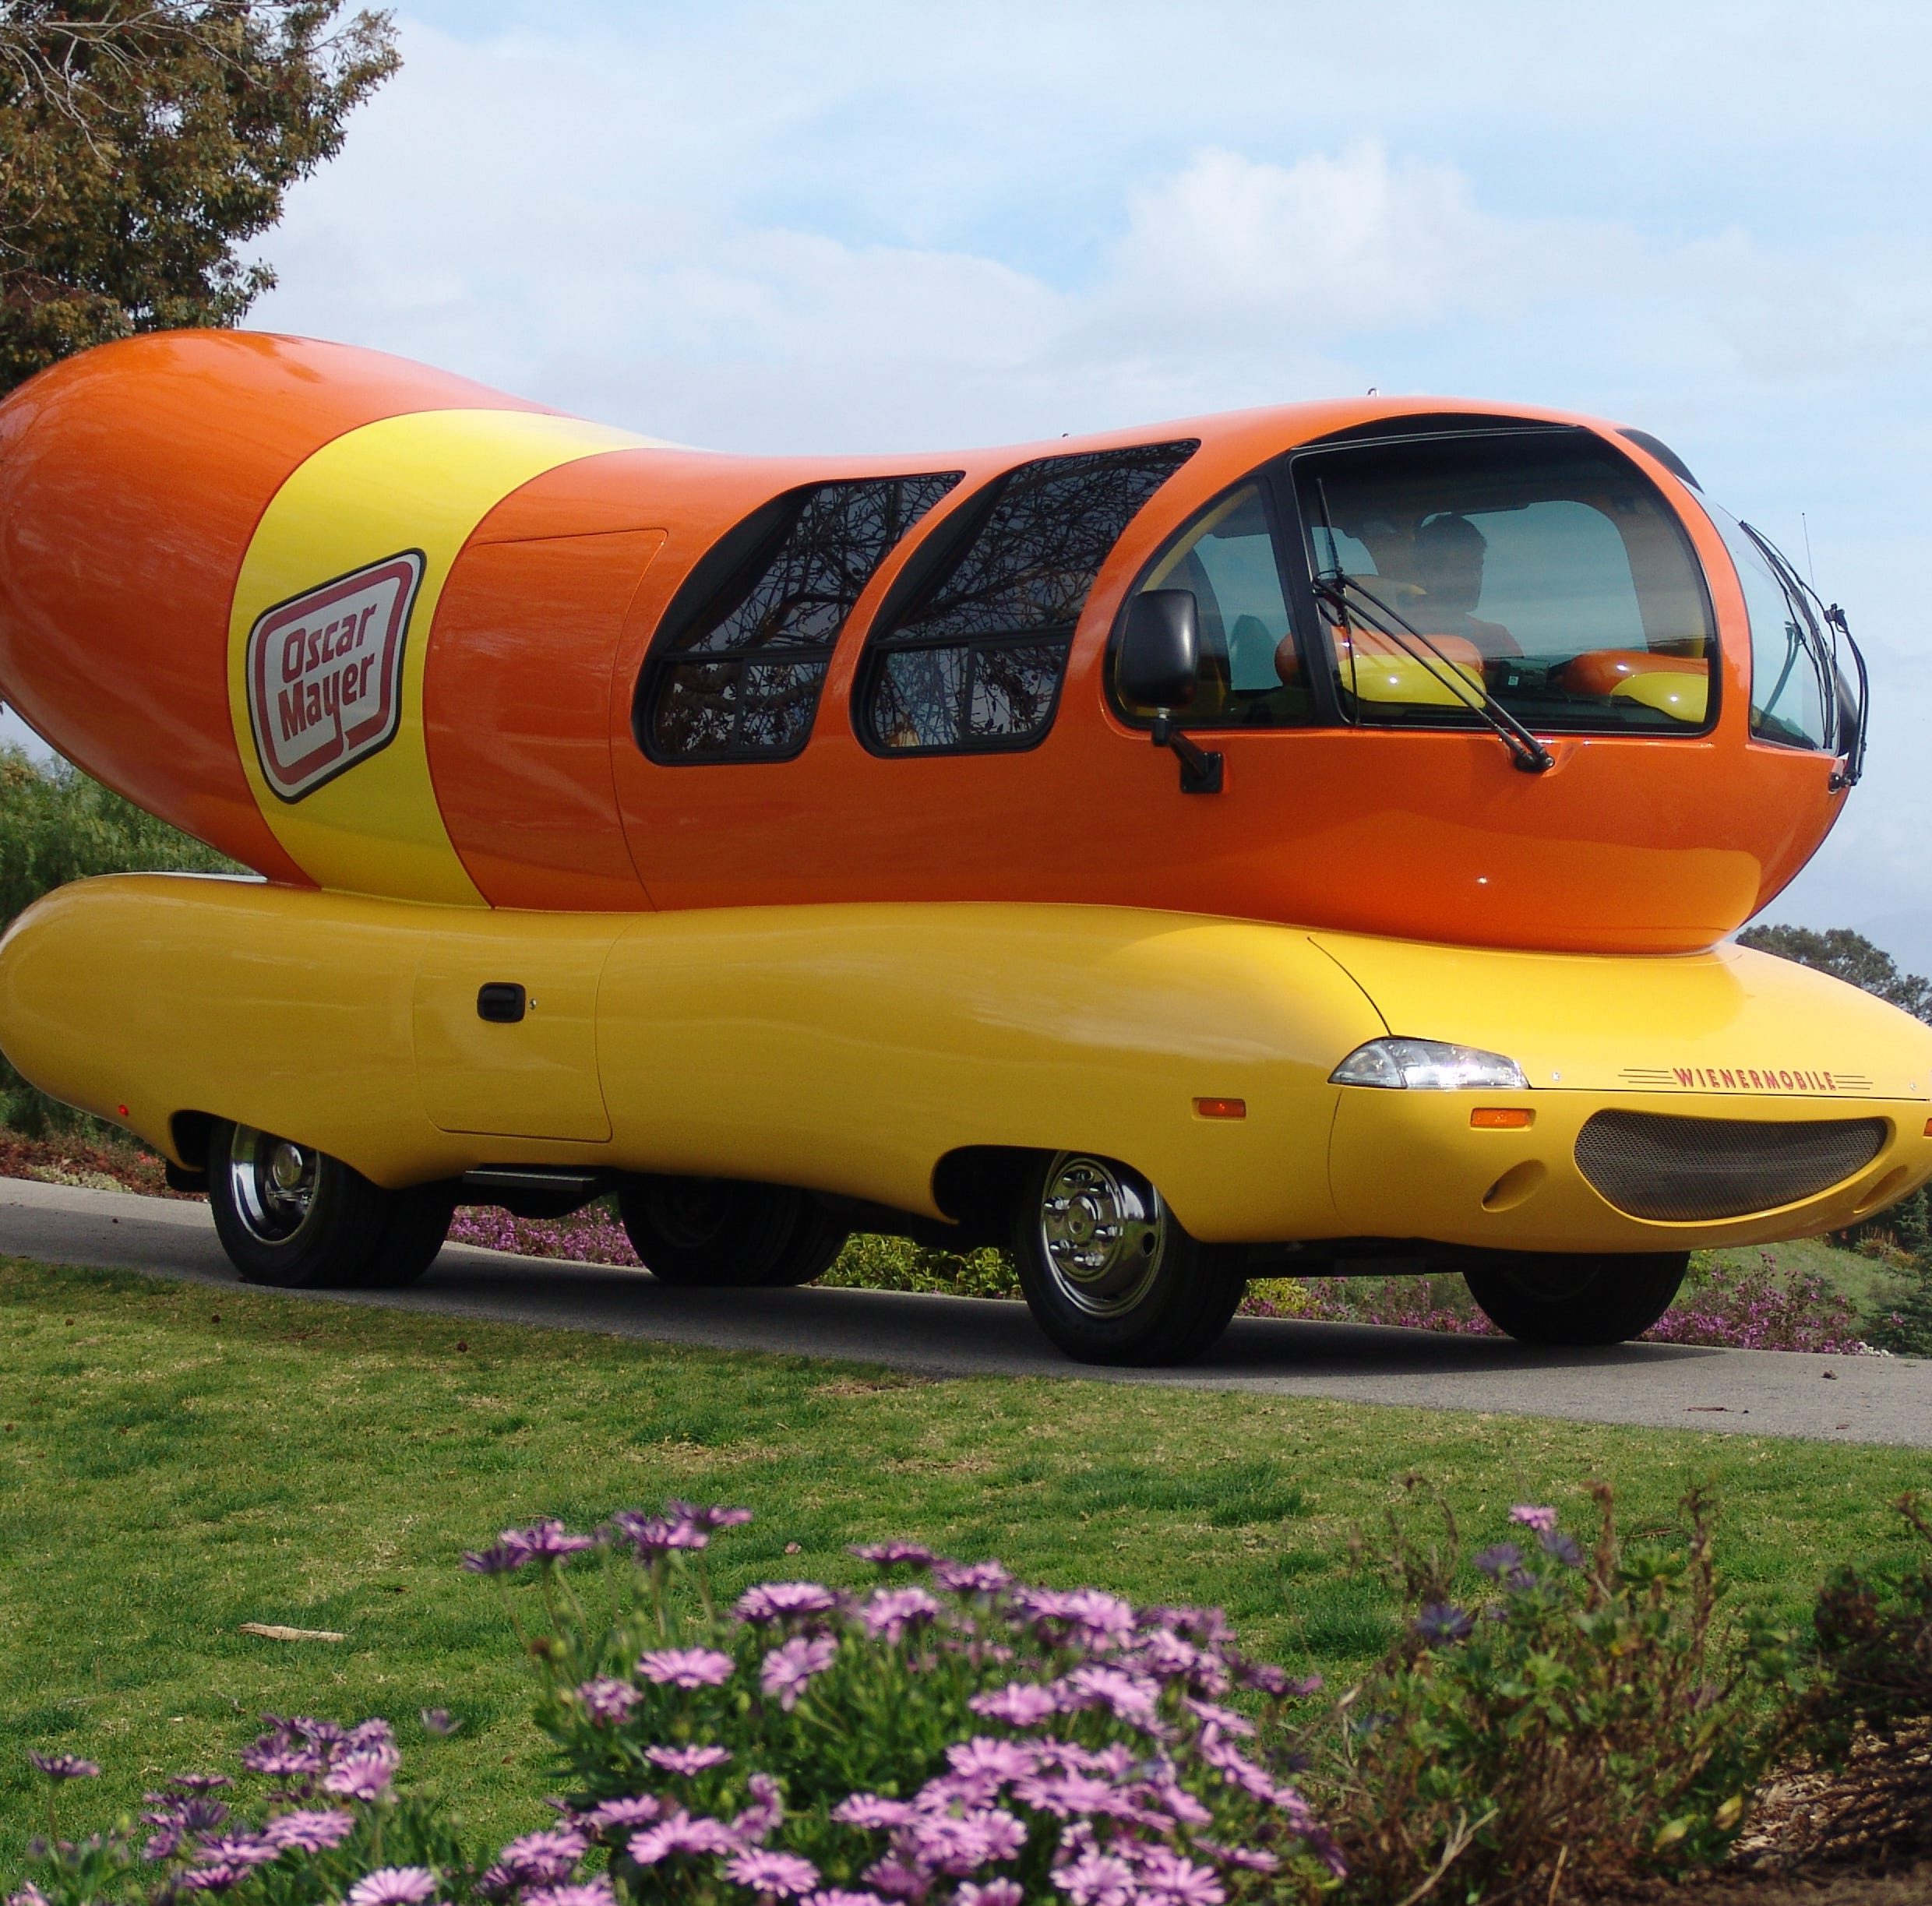 Quick, back to the Oscar Mayer Wienermobile, Robin | Mark Hinson